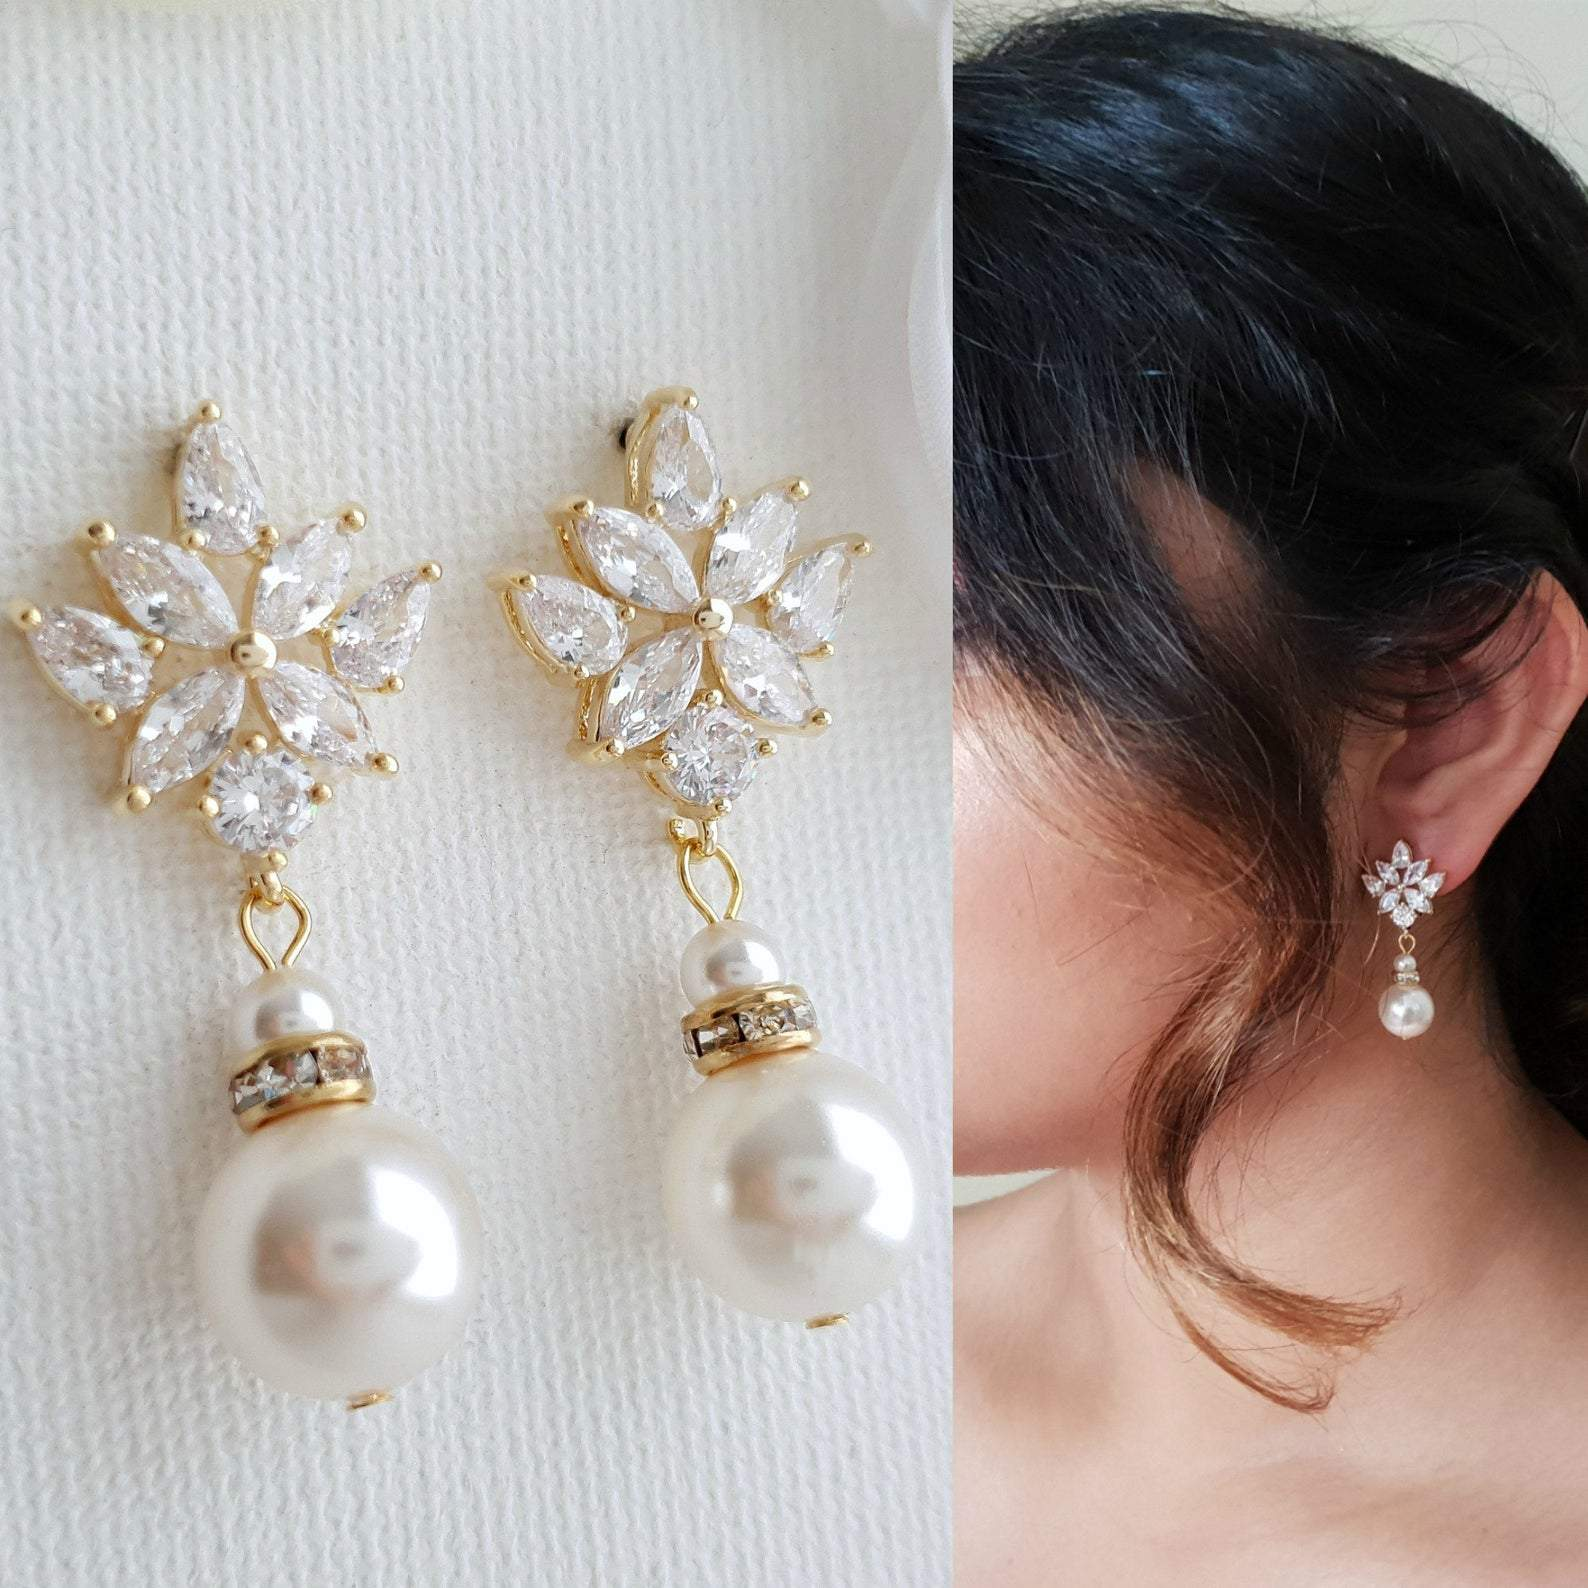 Bridal Drop Earrings Gold With Round Pearls- Rosa - PoetryDesigns